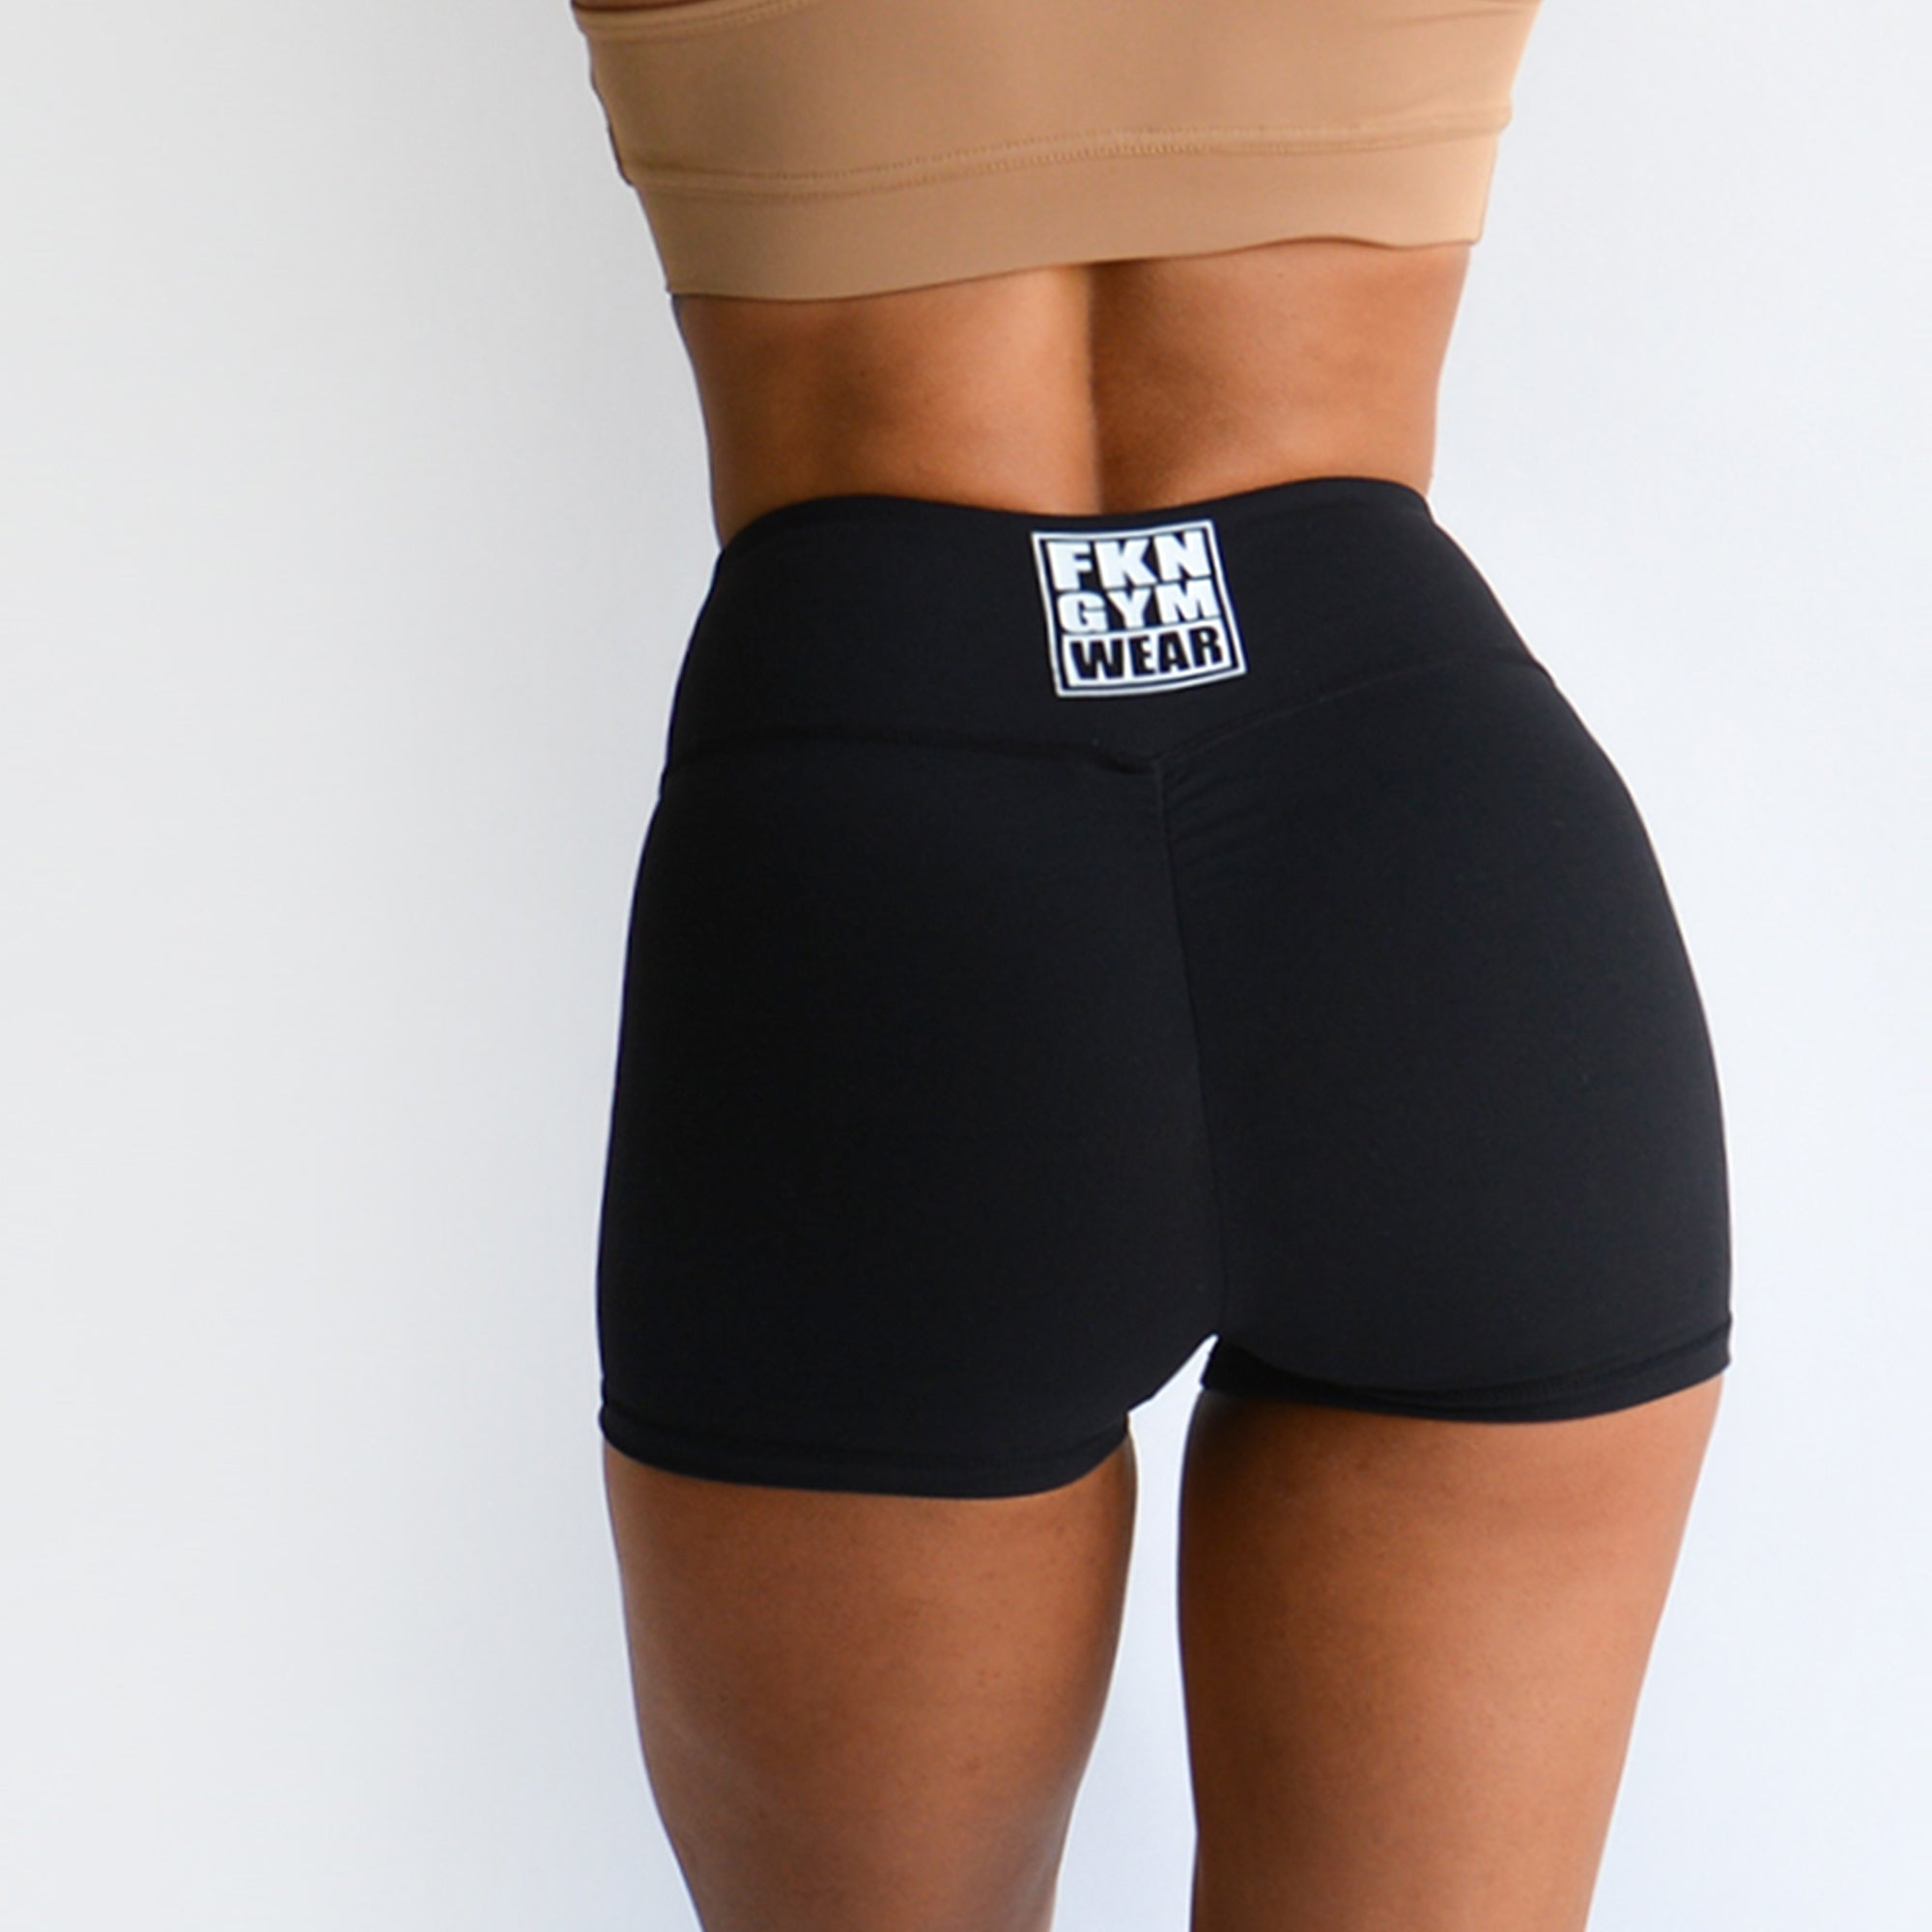 fkn-gym-wear-high-waist-gym-shorts-black-back-close